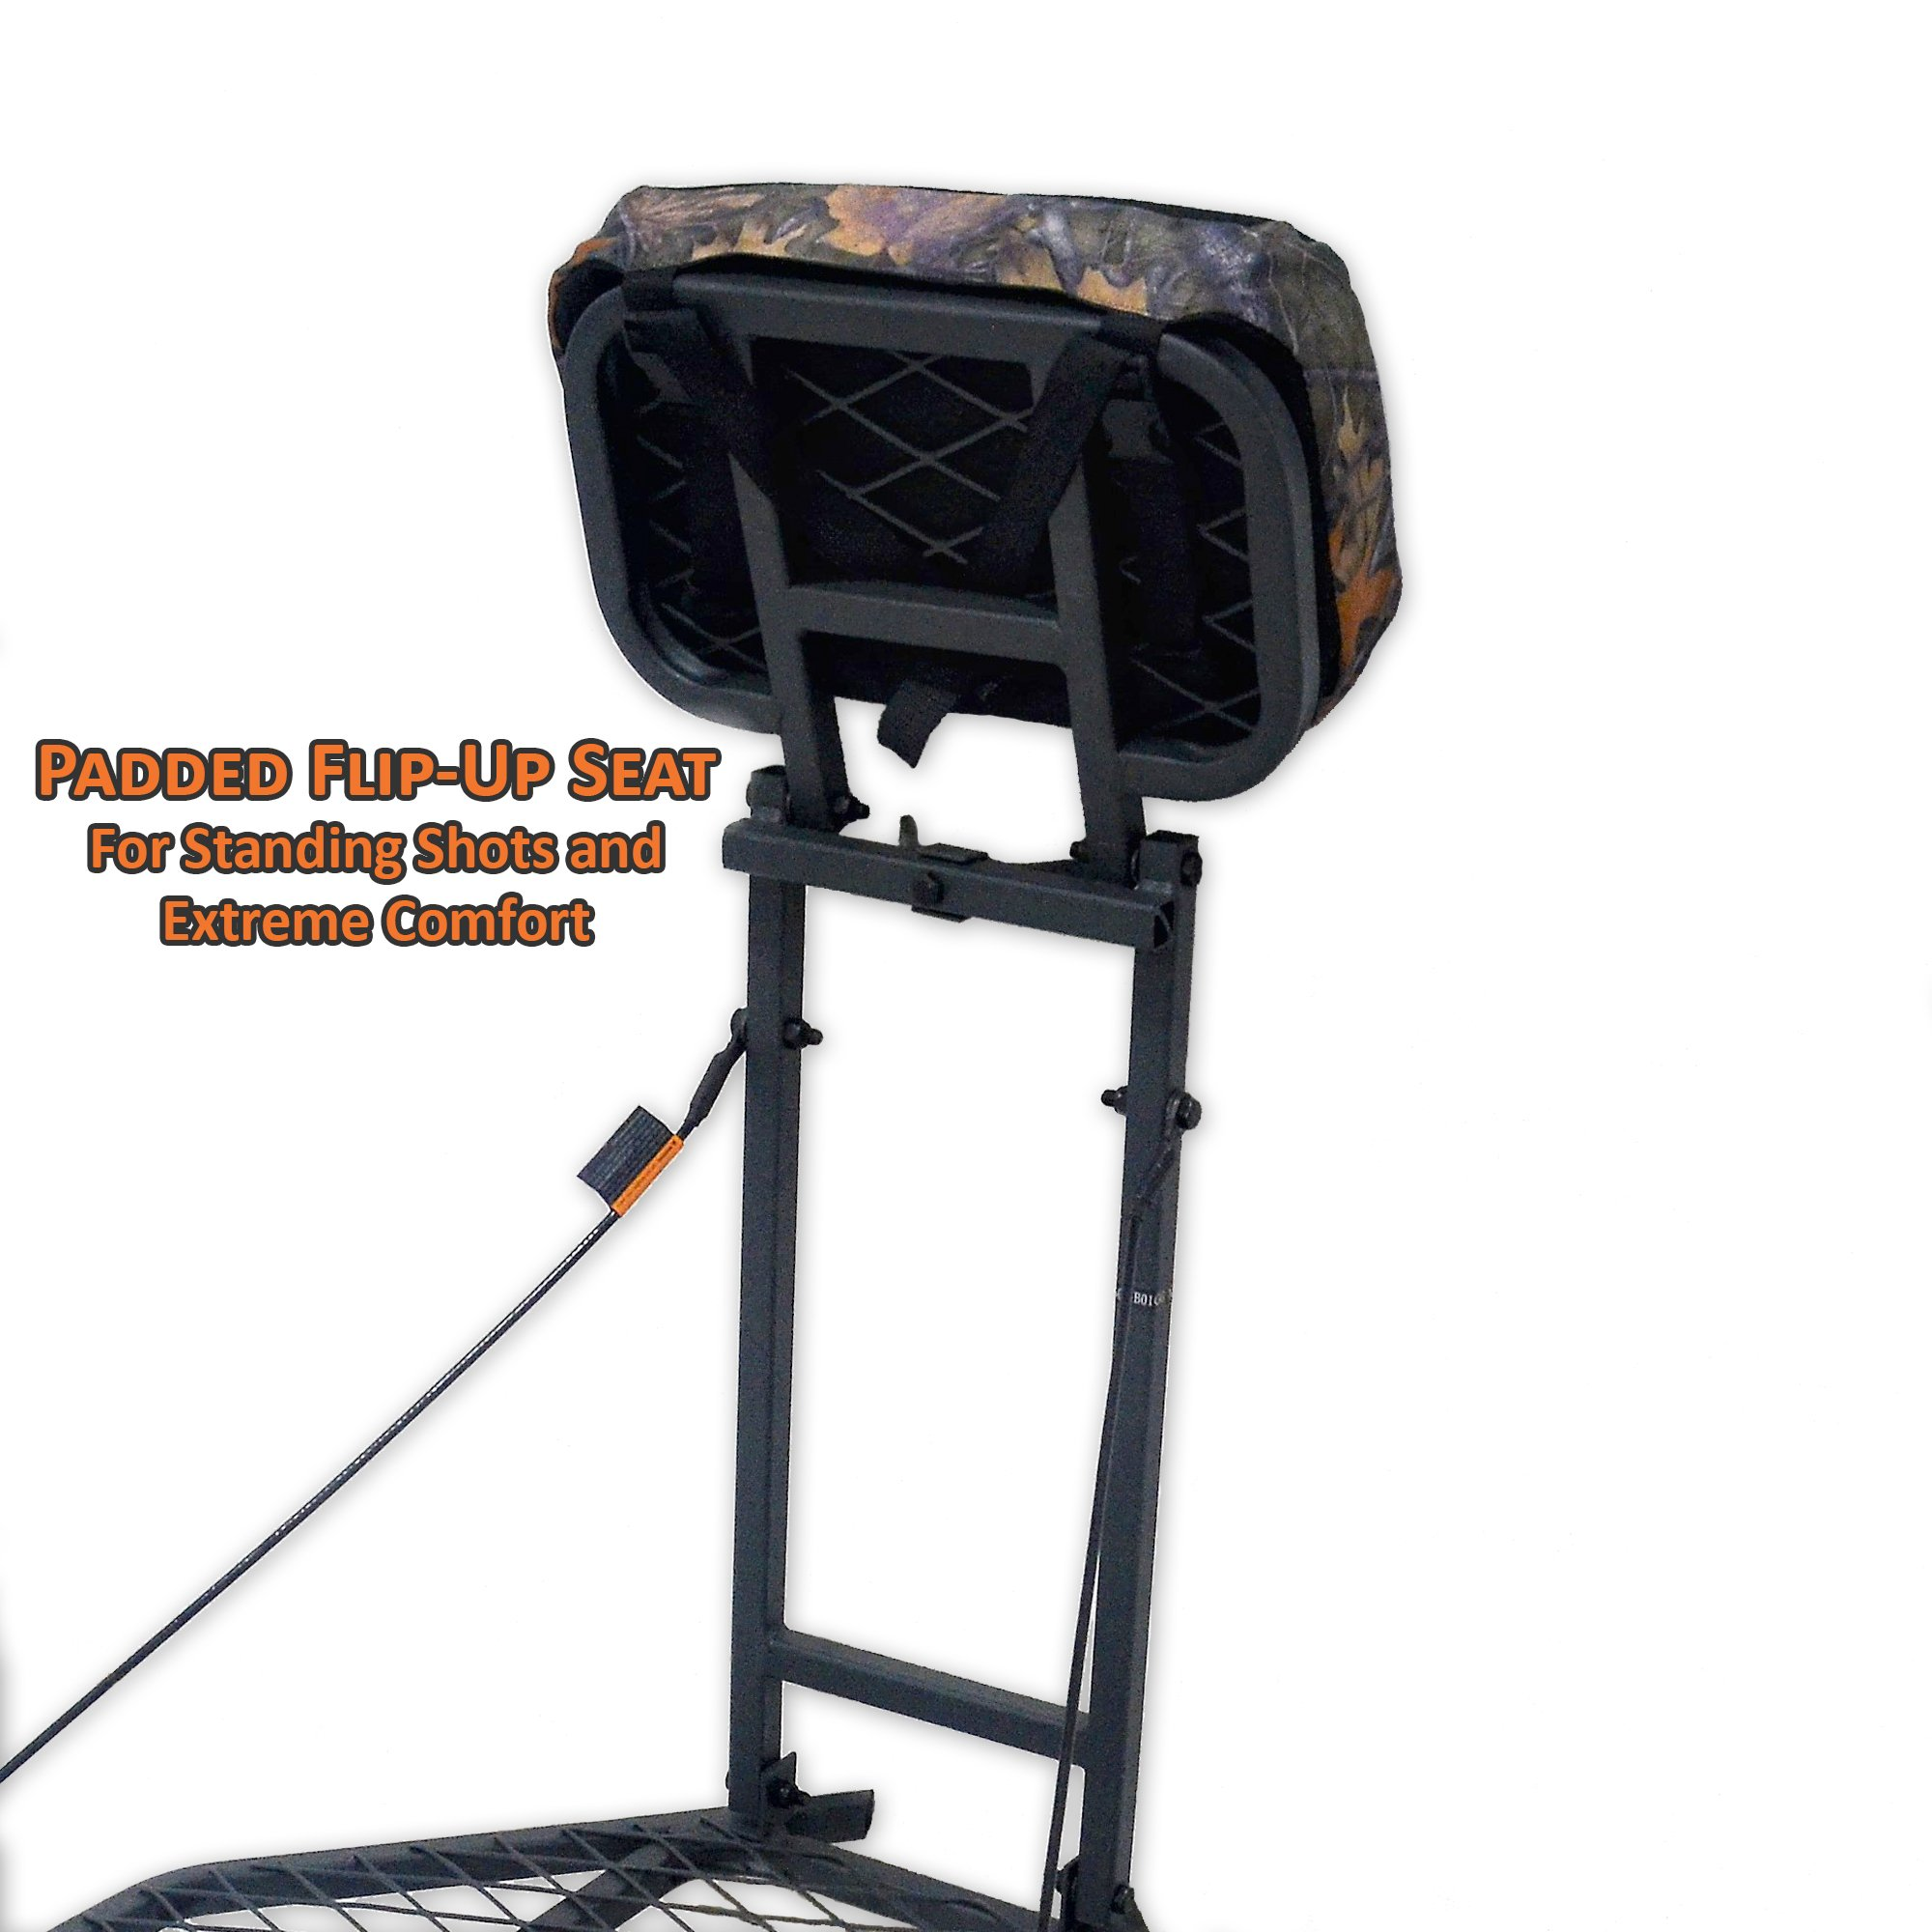 "Copper Ridge Outdoors Tree Stand - Hang On Deer Stand, Large 24"" x 32"" Foot Platform, Flip Up Padded Seat, Steel Construction, 300 lb. Weight Capacity, Treestand for Deer Hunting by Copper Ridge Outdoors (Image #3)"